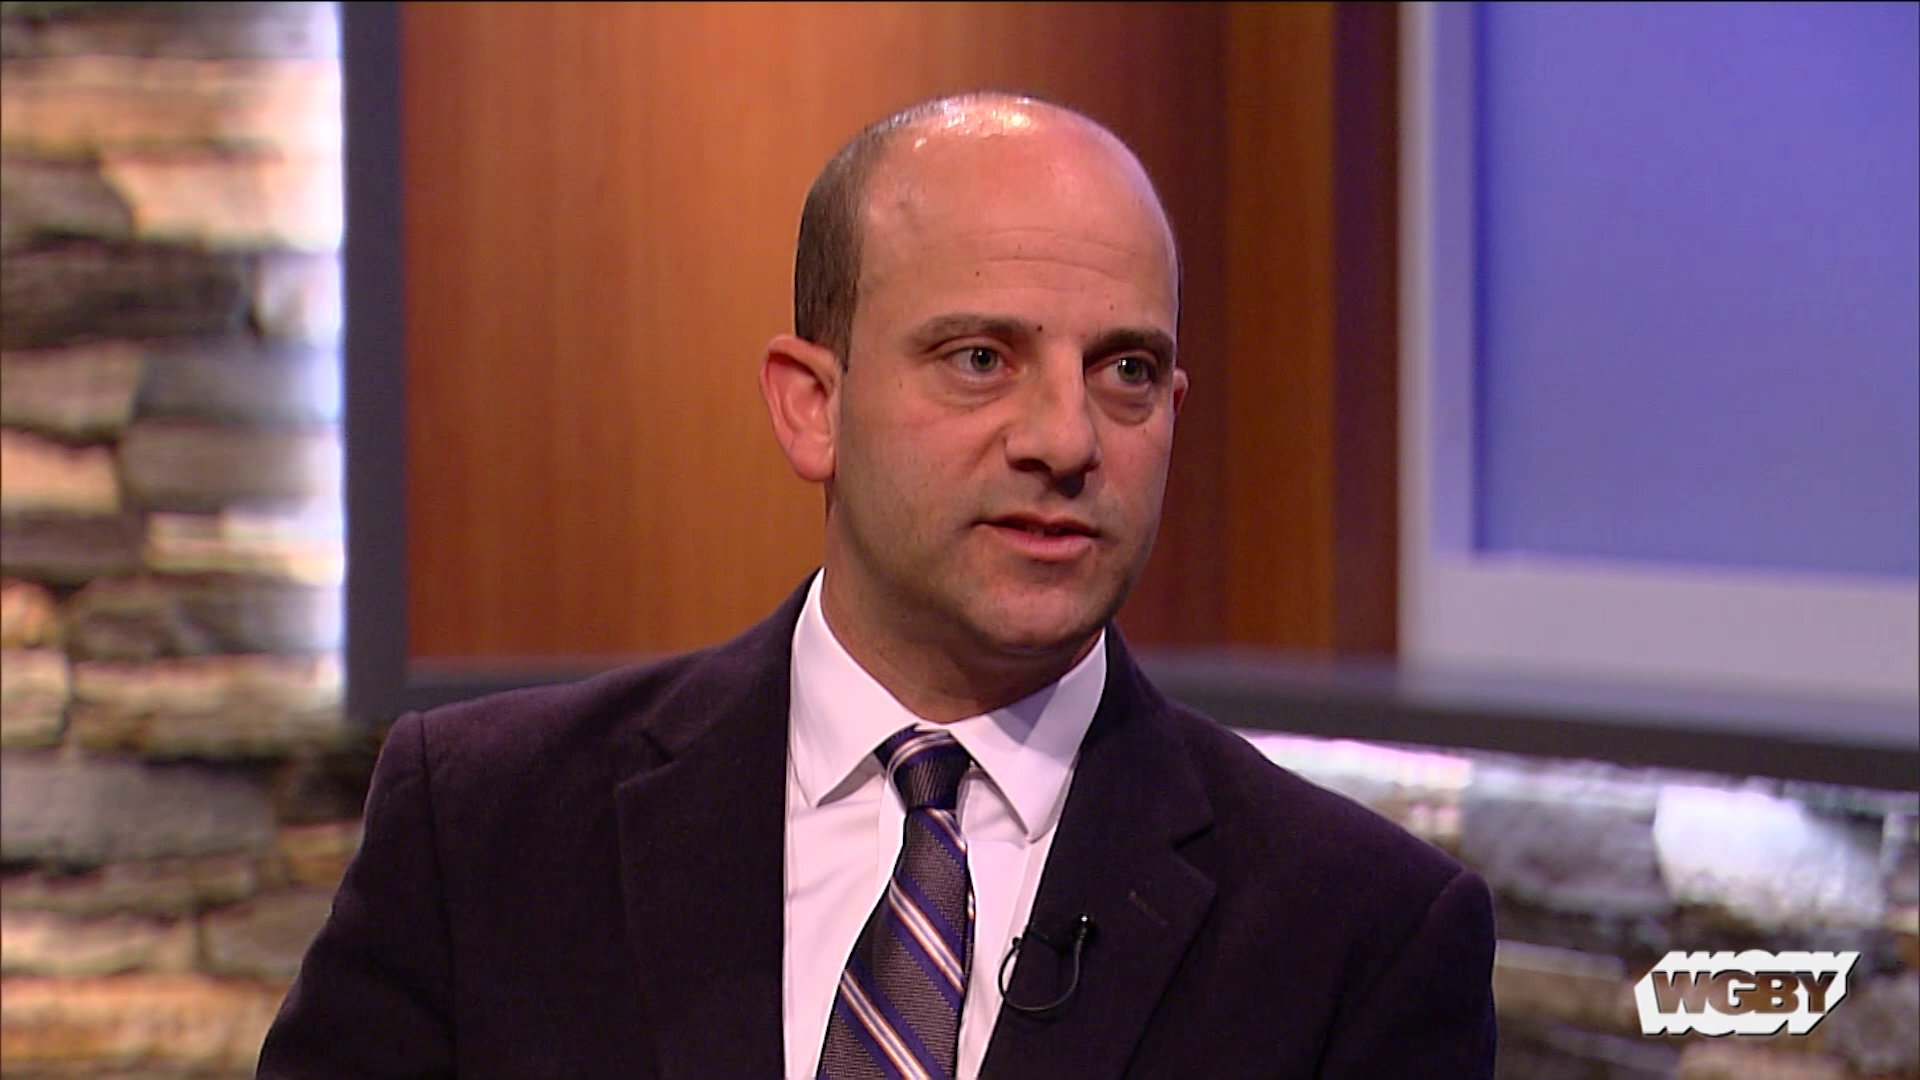 To mark Lung Cancer Awareness Month, Dr. Laki Rousou discusses Holyoke Medical Center's lung cancer screening program and signs of lung cancer.